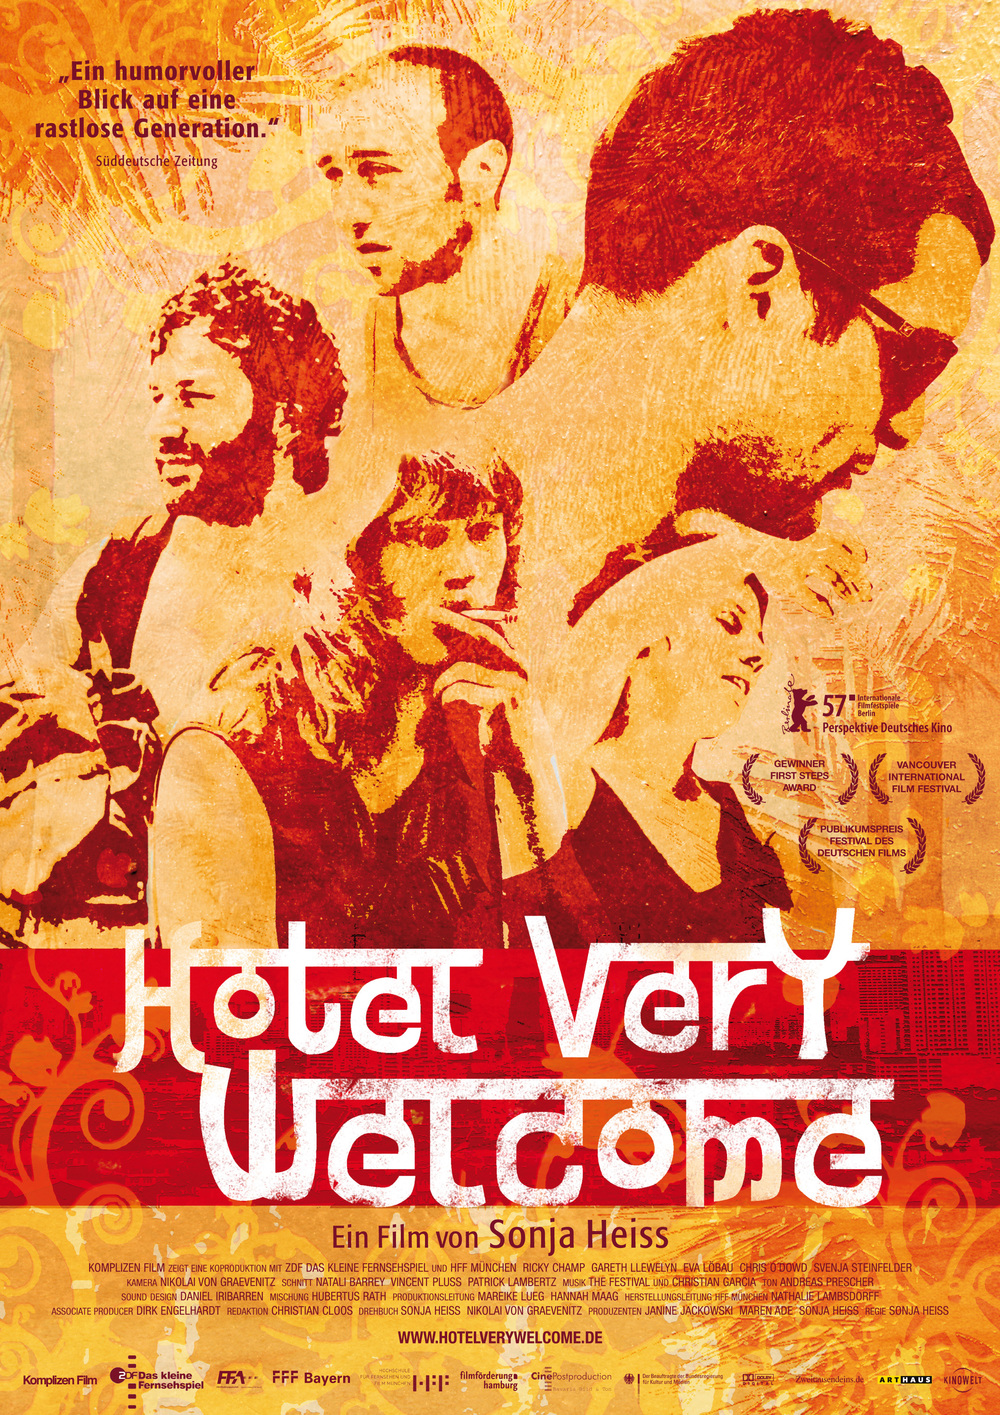 2007_Hotel_Very_Welcome_Komplizen_Film.jpg